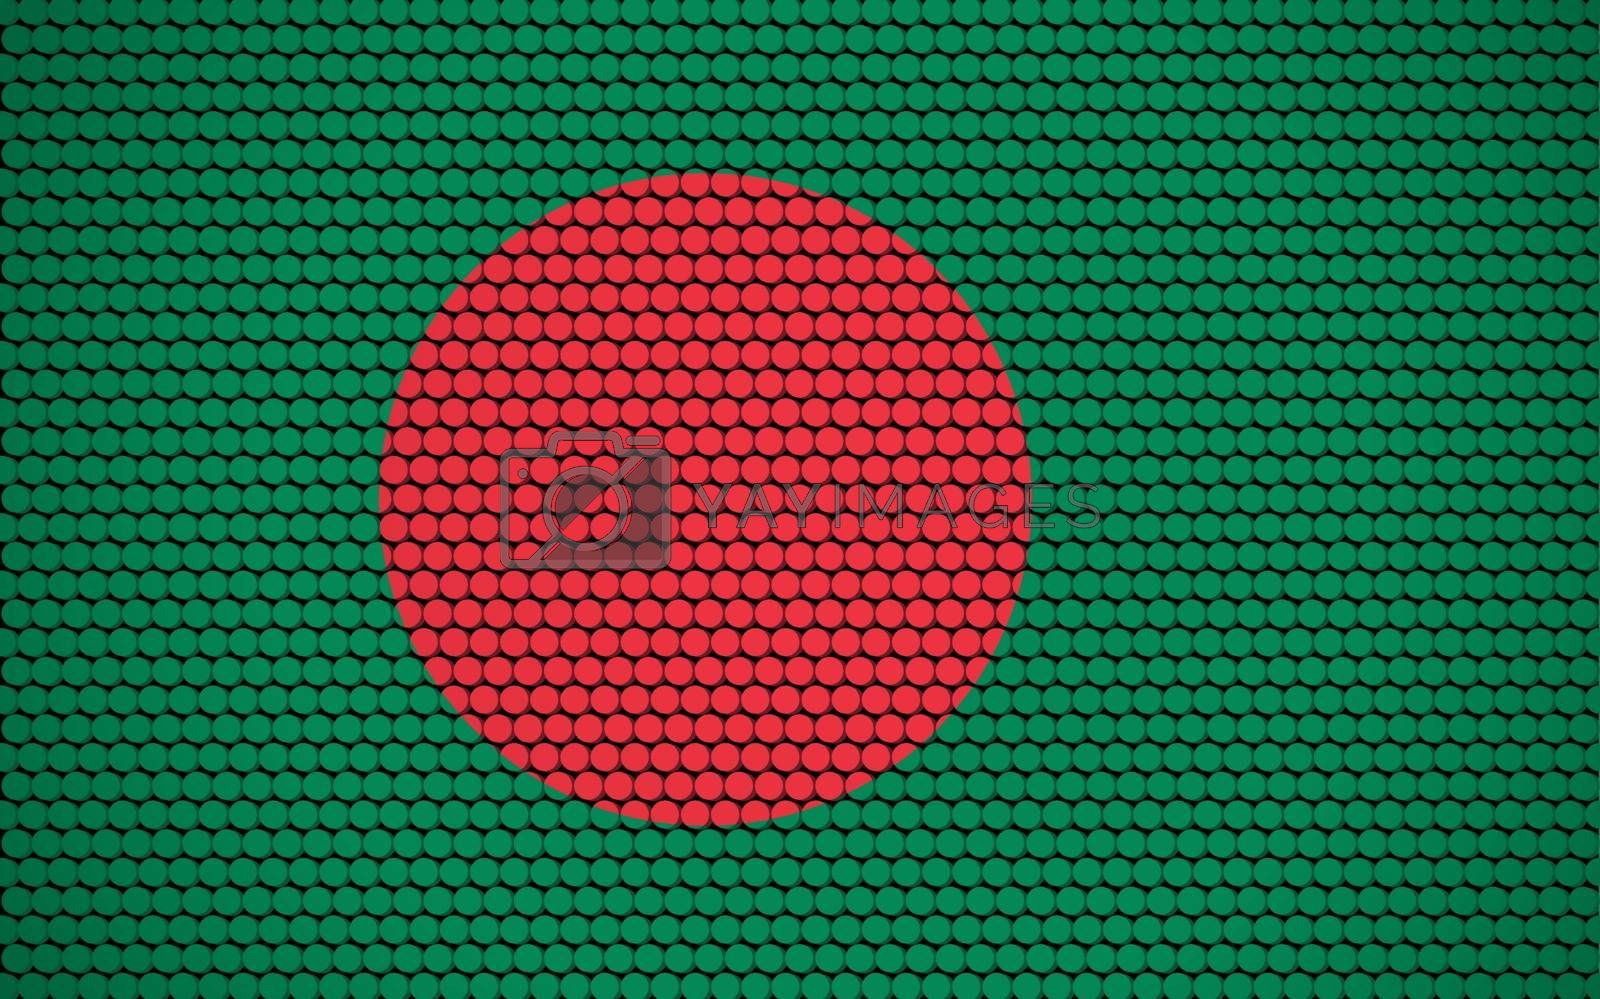 Abstract flag of Bangladesh made of circles. Bangladeshi flag designed with colored dots giving it a modern and futuristic abstract look.